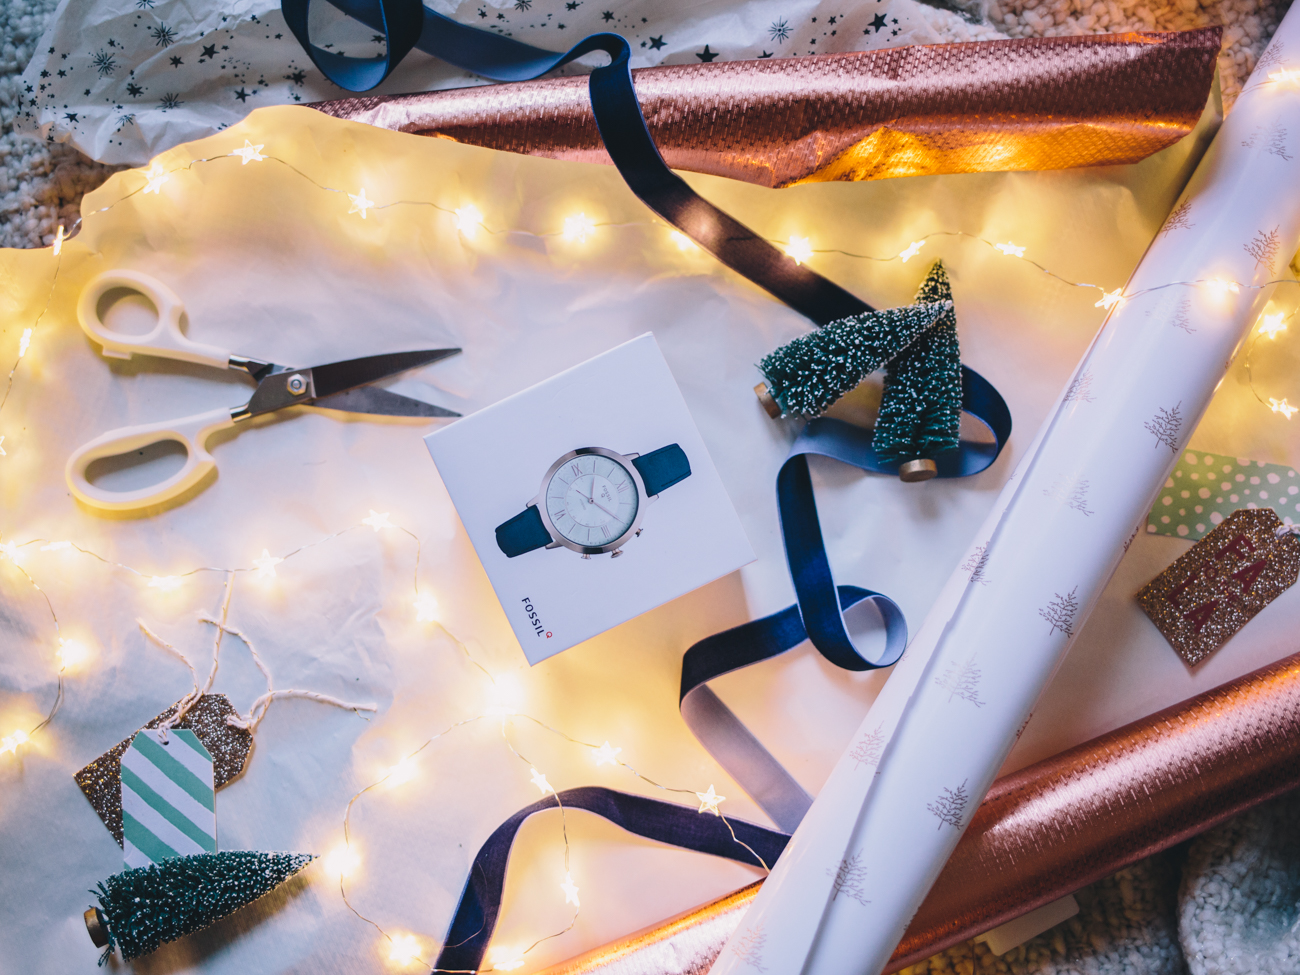 Last Minute Gift Ideas - Fossil Q Watch